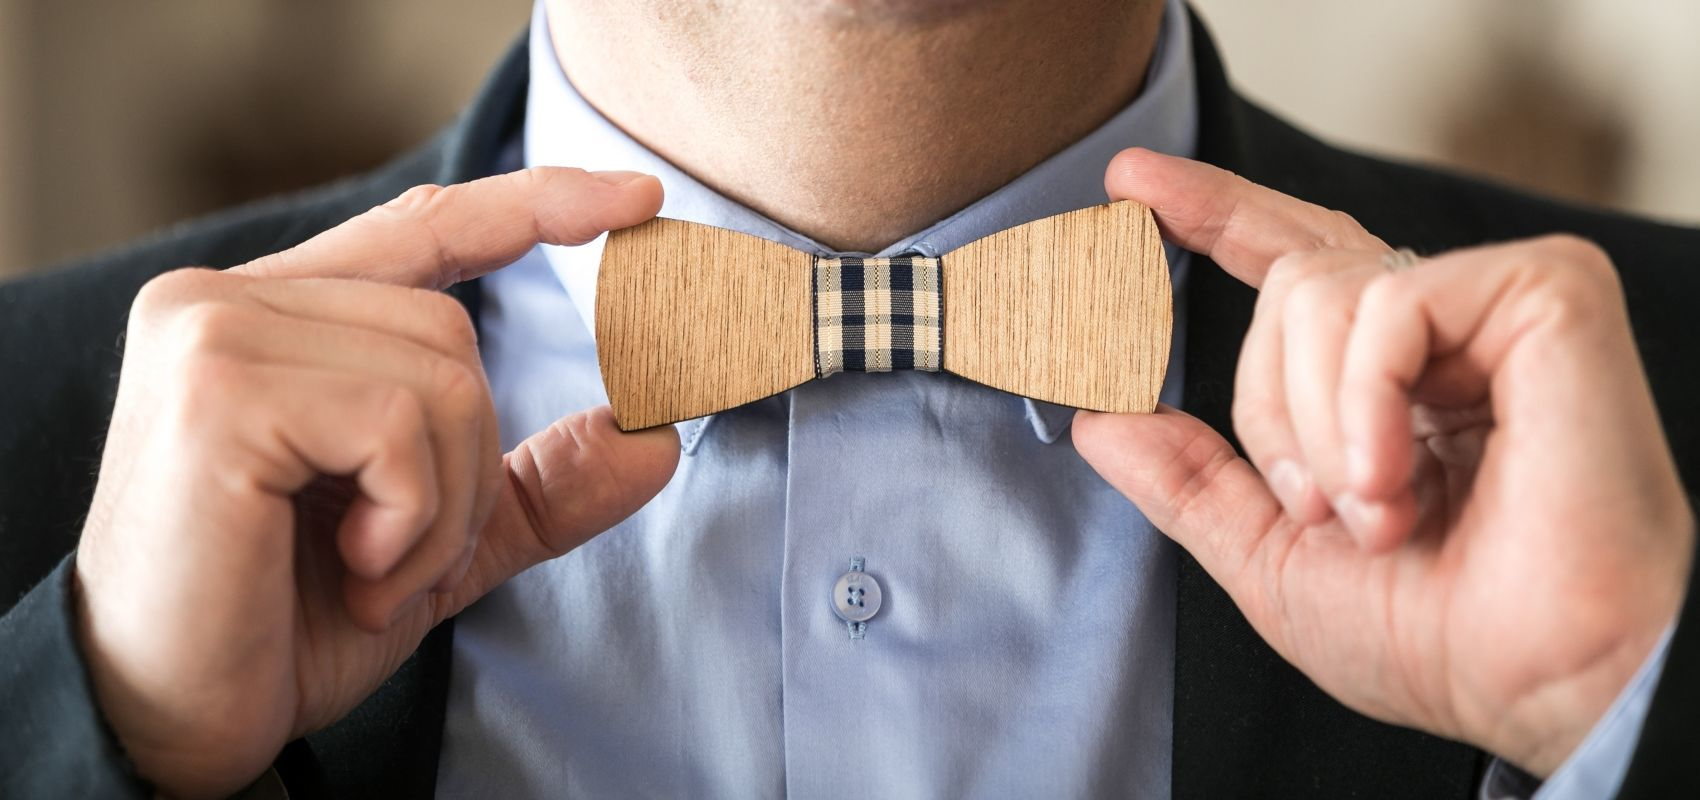 The Deck Hotel par HappyCulture - Détails